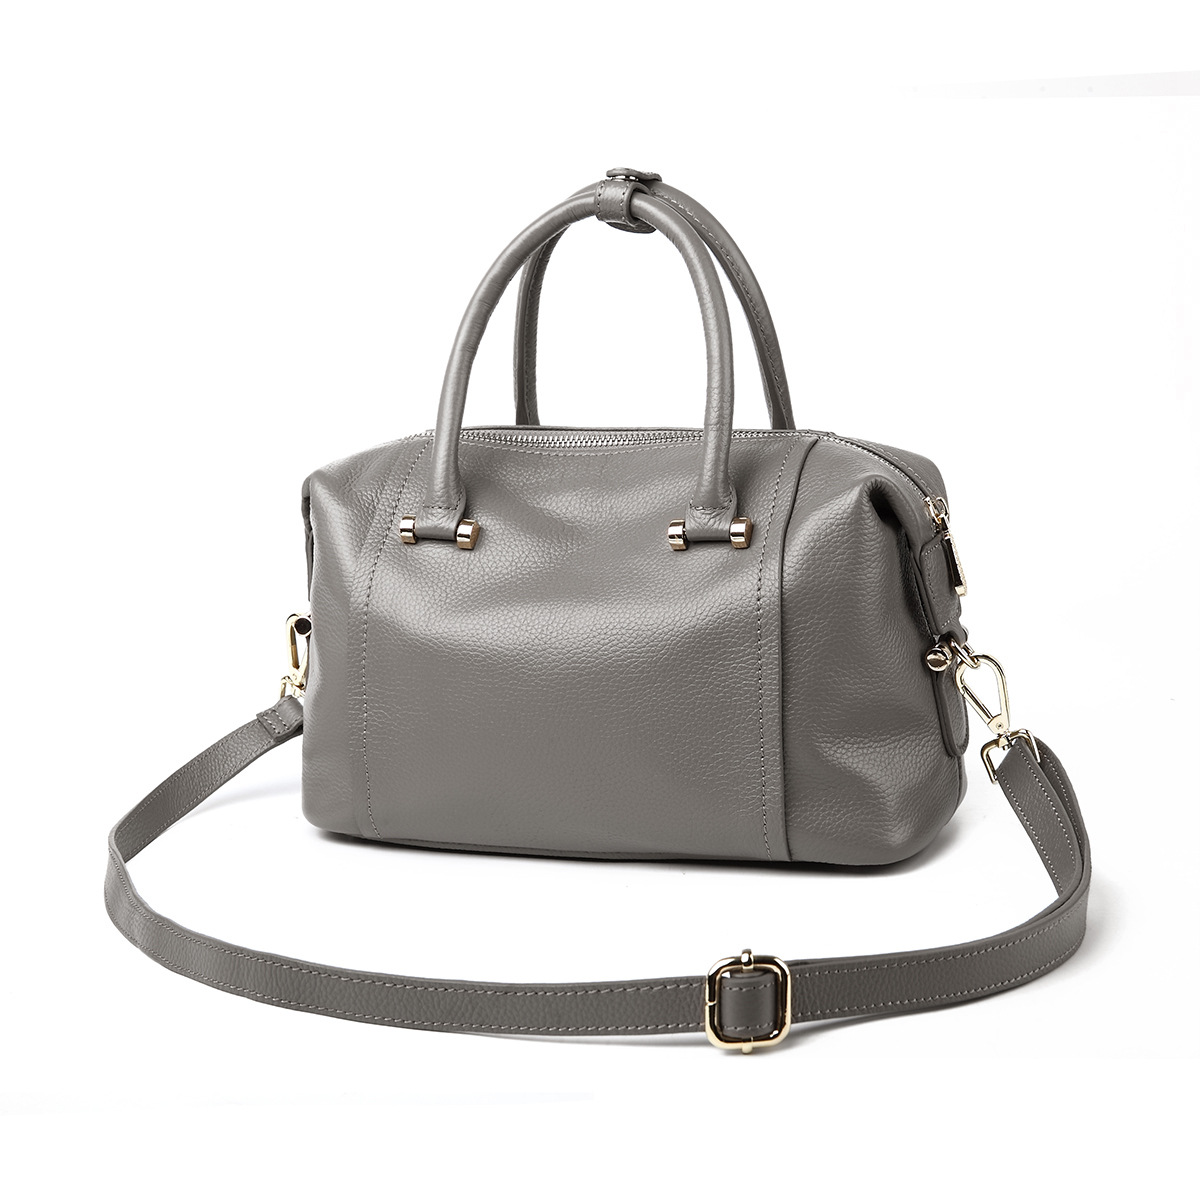 ФОТО Guaranteed 100% Genuine Cow Leather Women's messenger bags tote handbags women famous brands high quality shoulder bag 5 colors